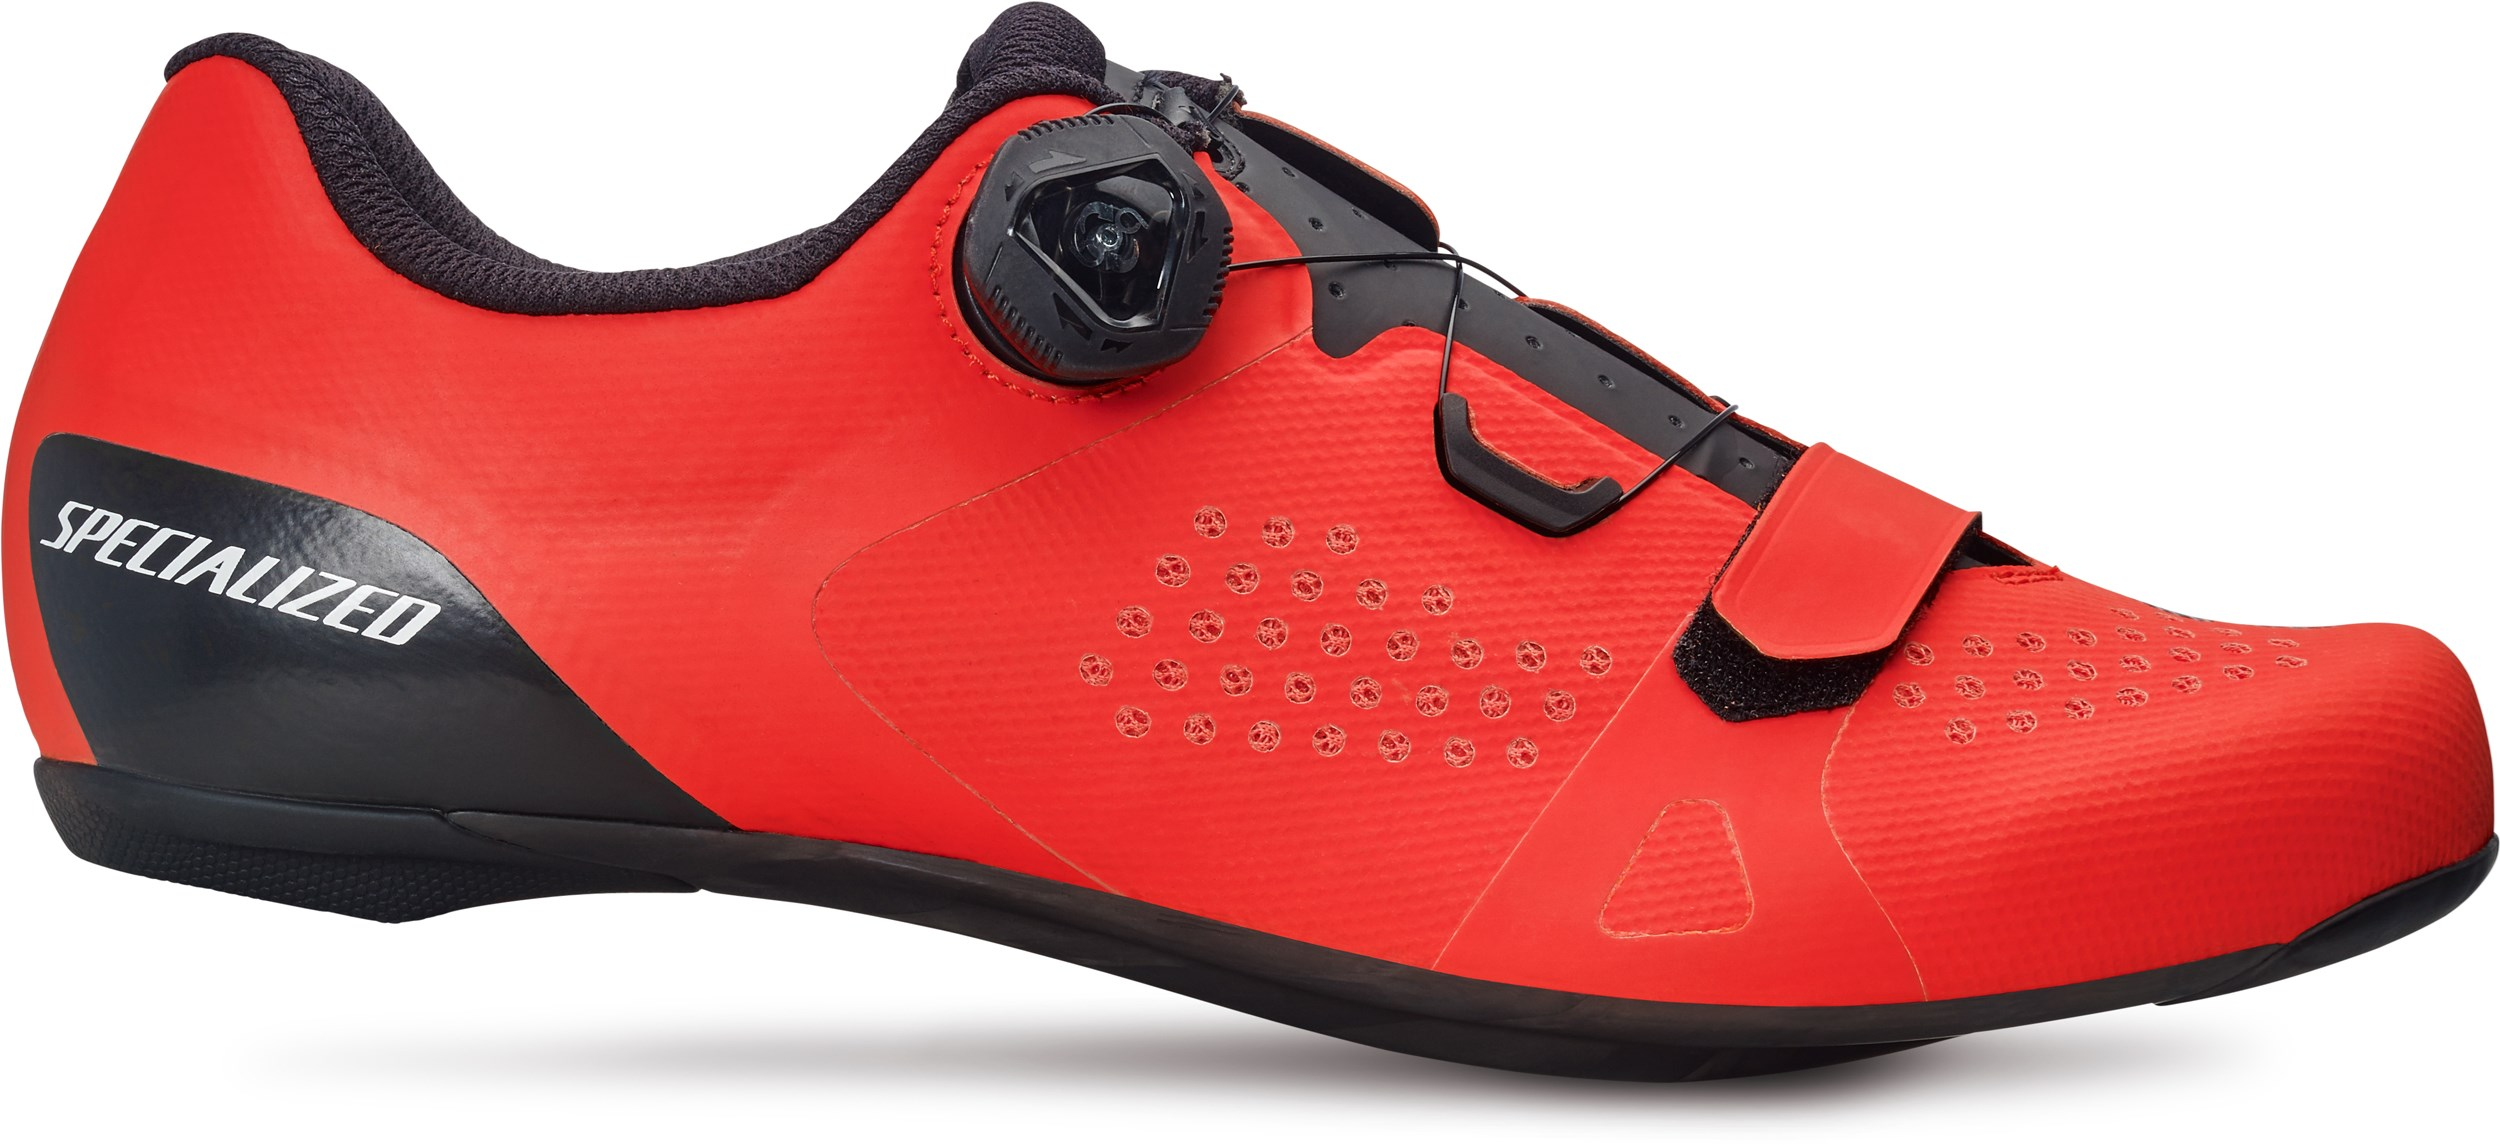 2018 Specialized Torch 2 0 Road Bike Shoes in Red